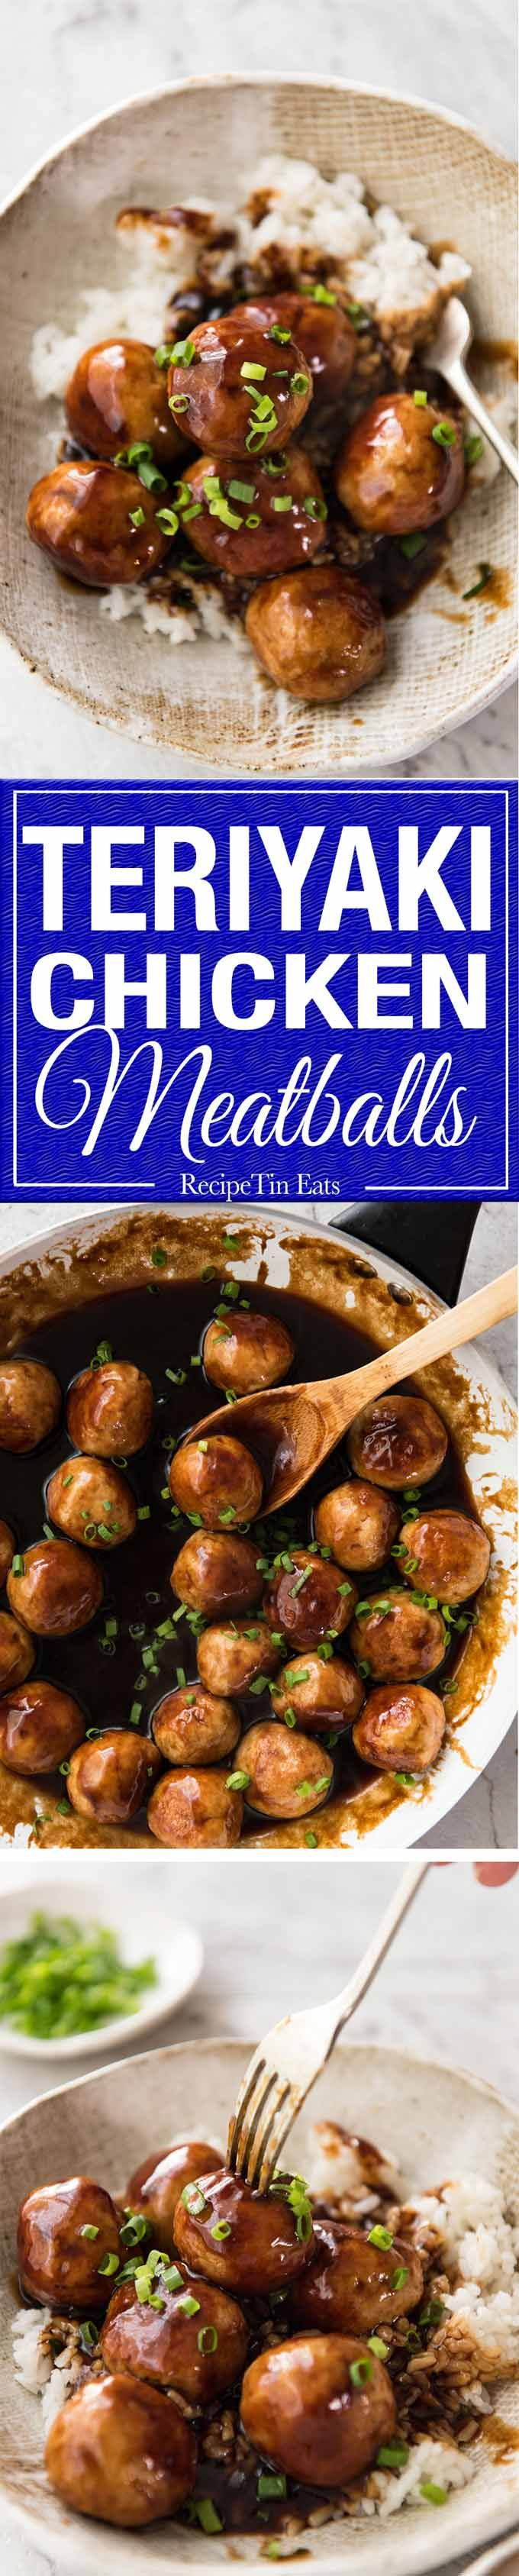 If you love juicy, plump chicken meatballs and Teriyaki sauce, you will go mad over these Teriyaki Chicken Meatballs! www.recipetineats.com